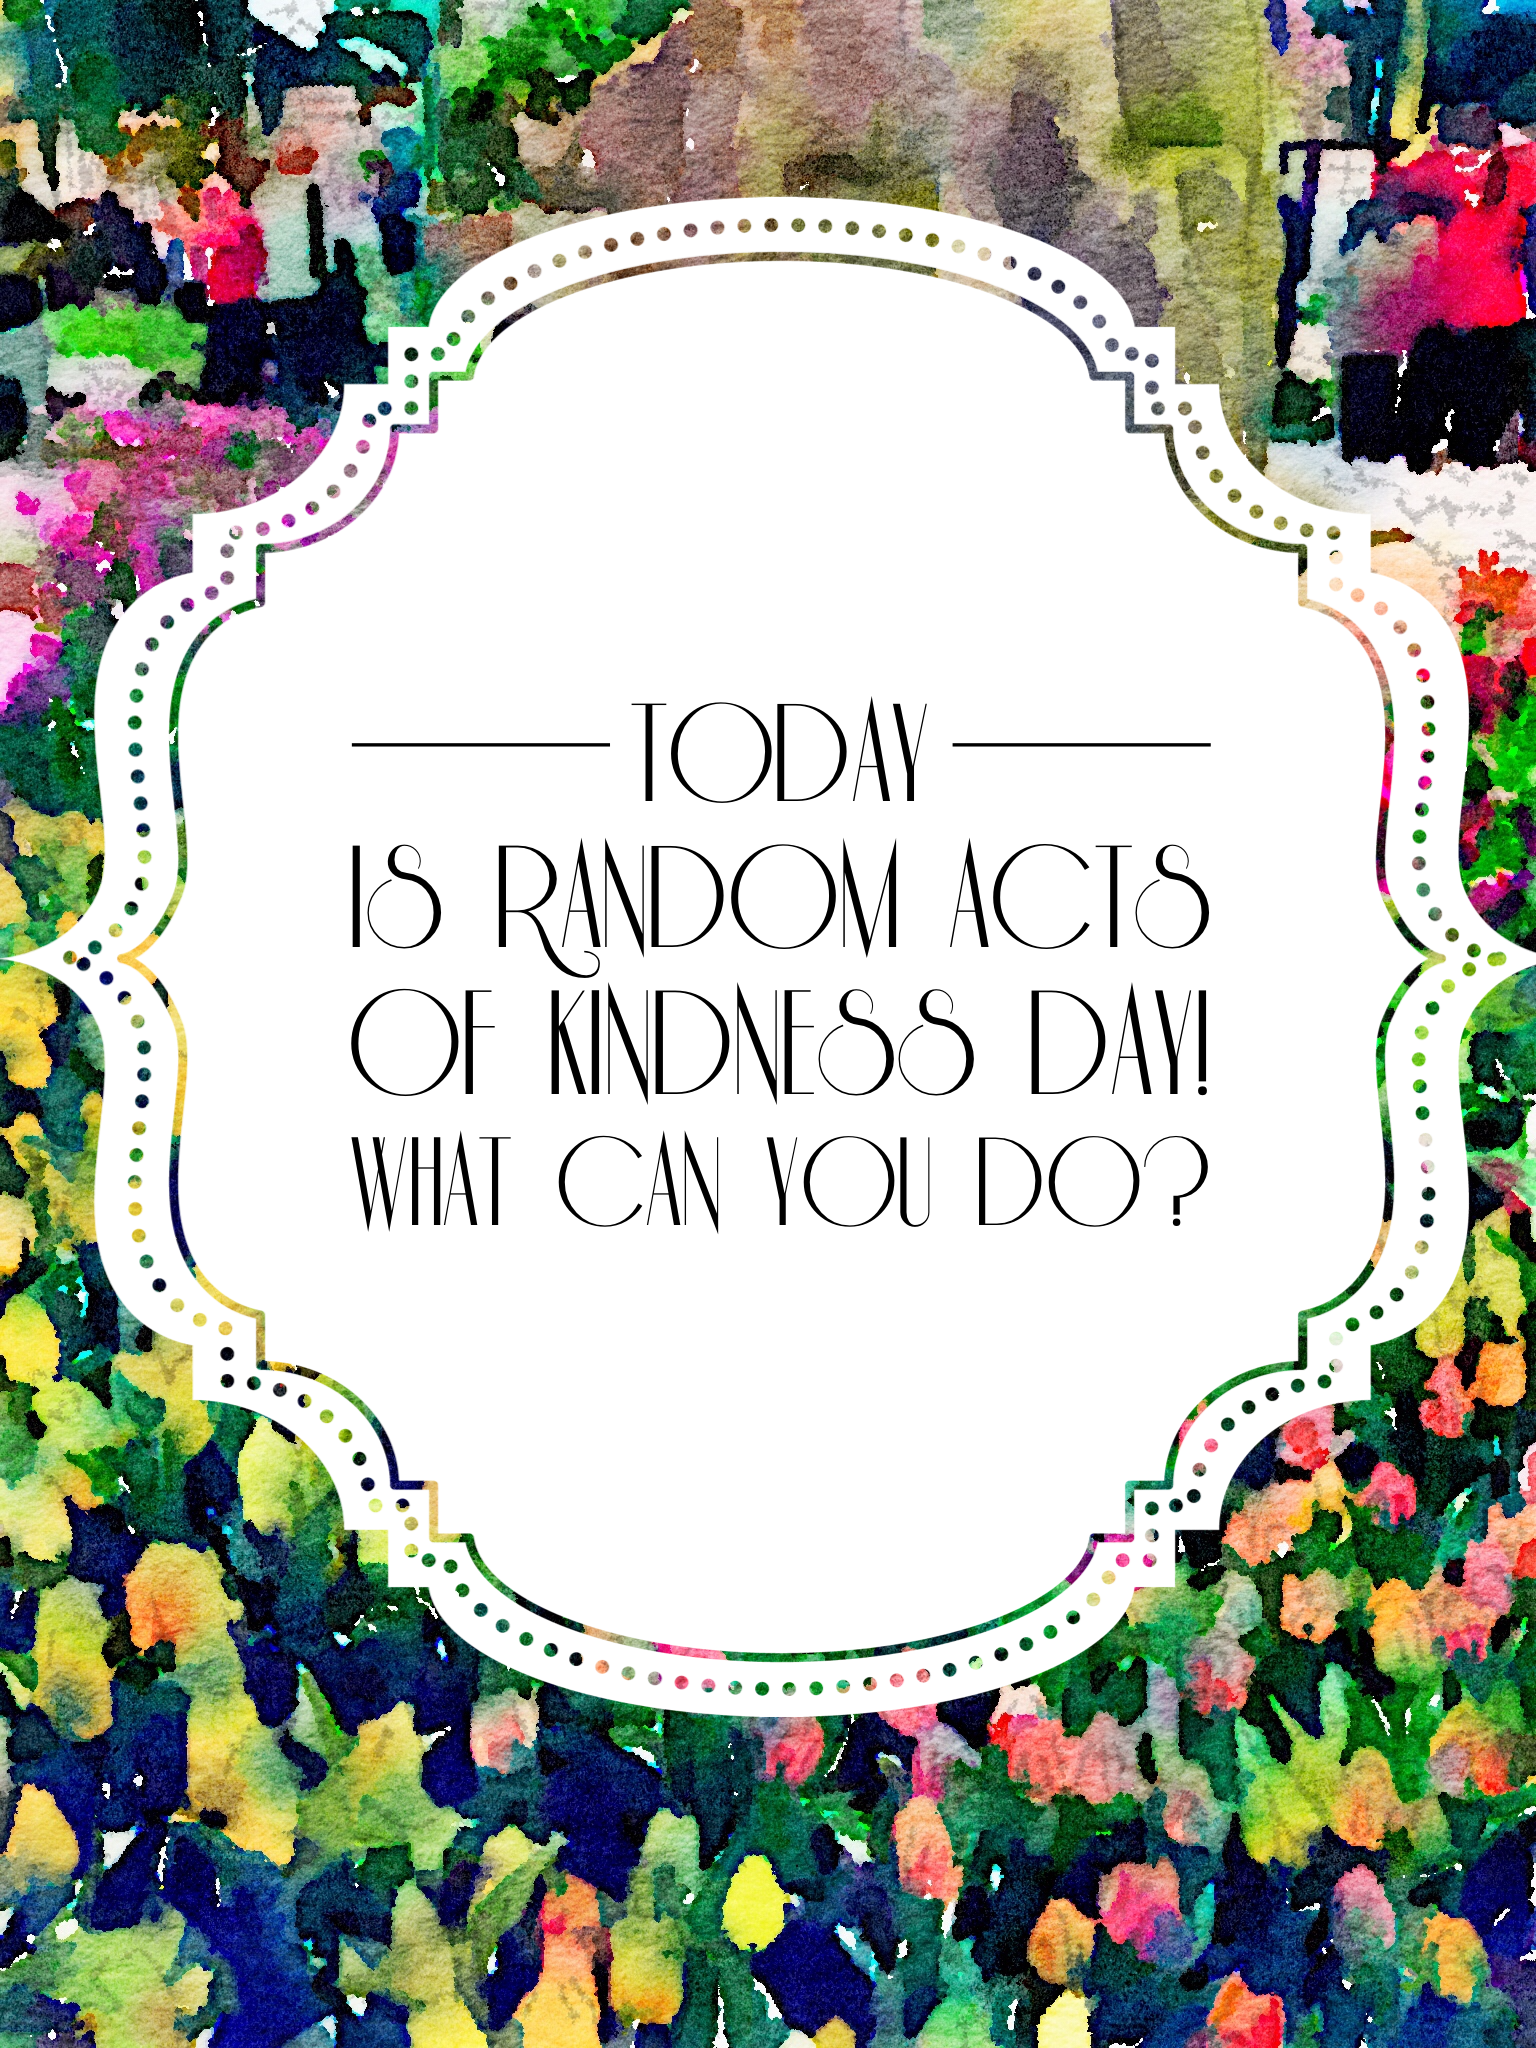 Happy Random Acts Of Kindness Day!